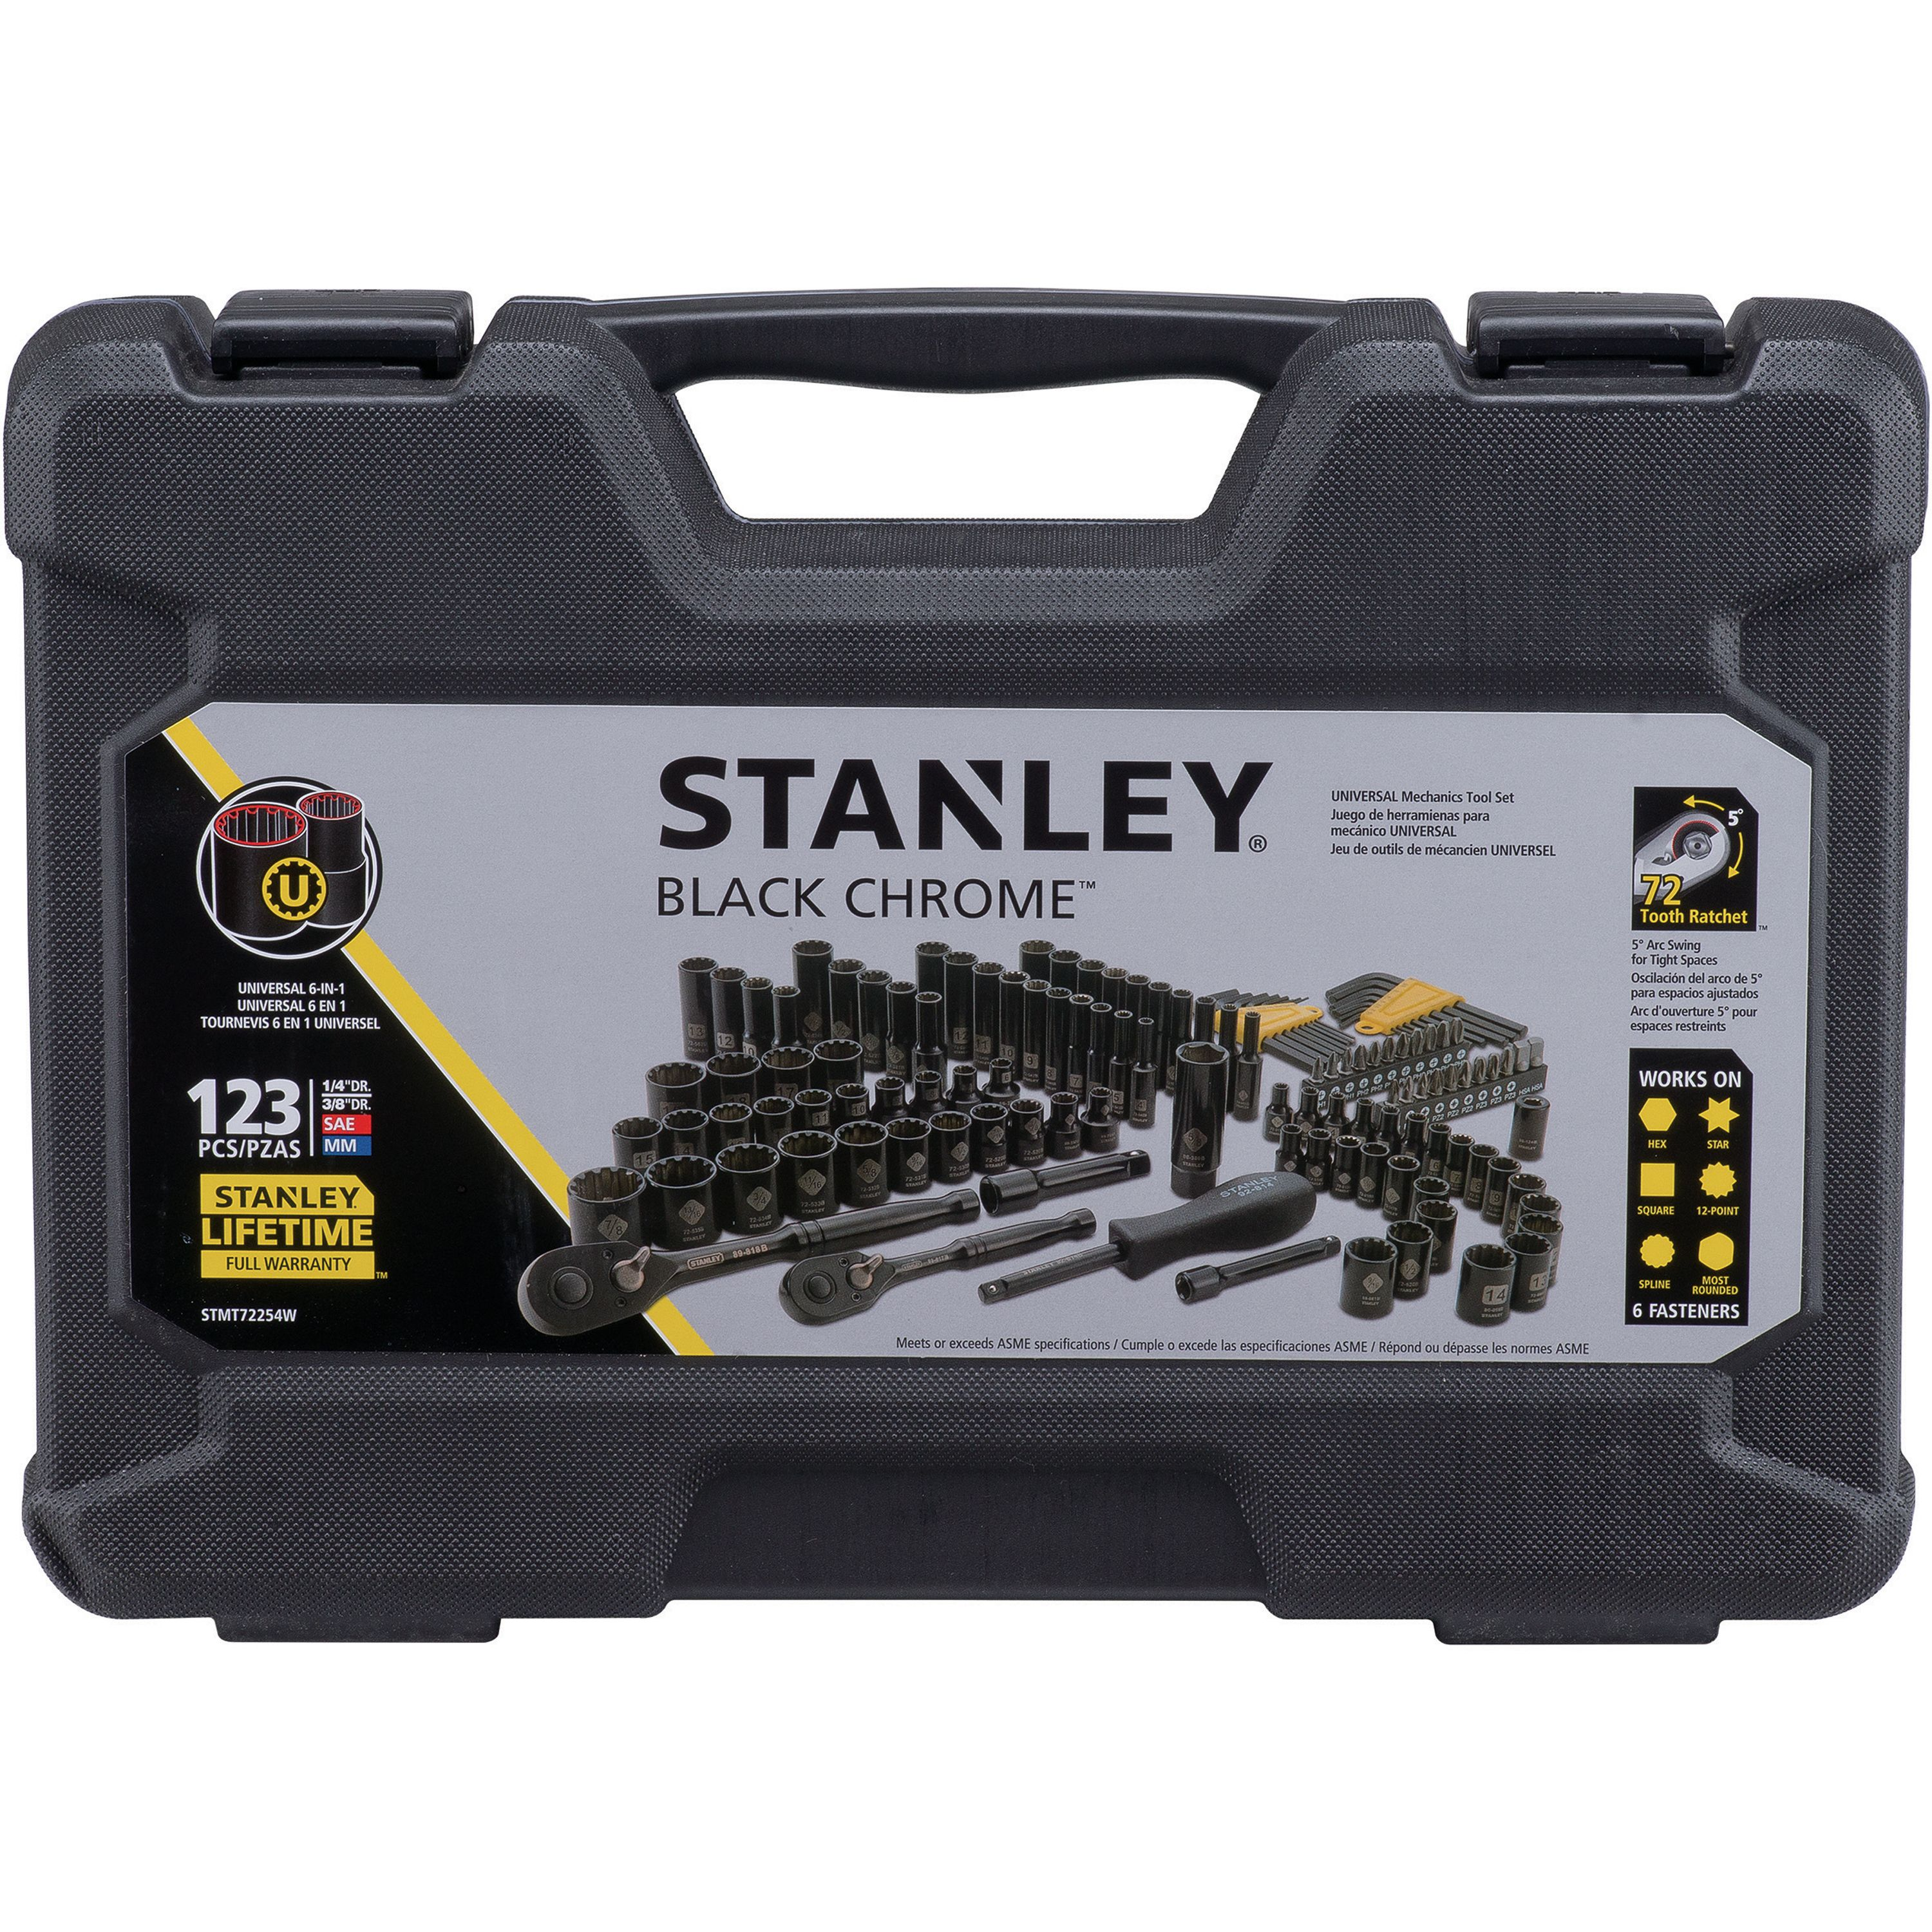 STANLEY 123-Piece Mechanics Tool Set, Black Chrome | STMT72254W